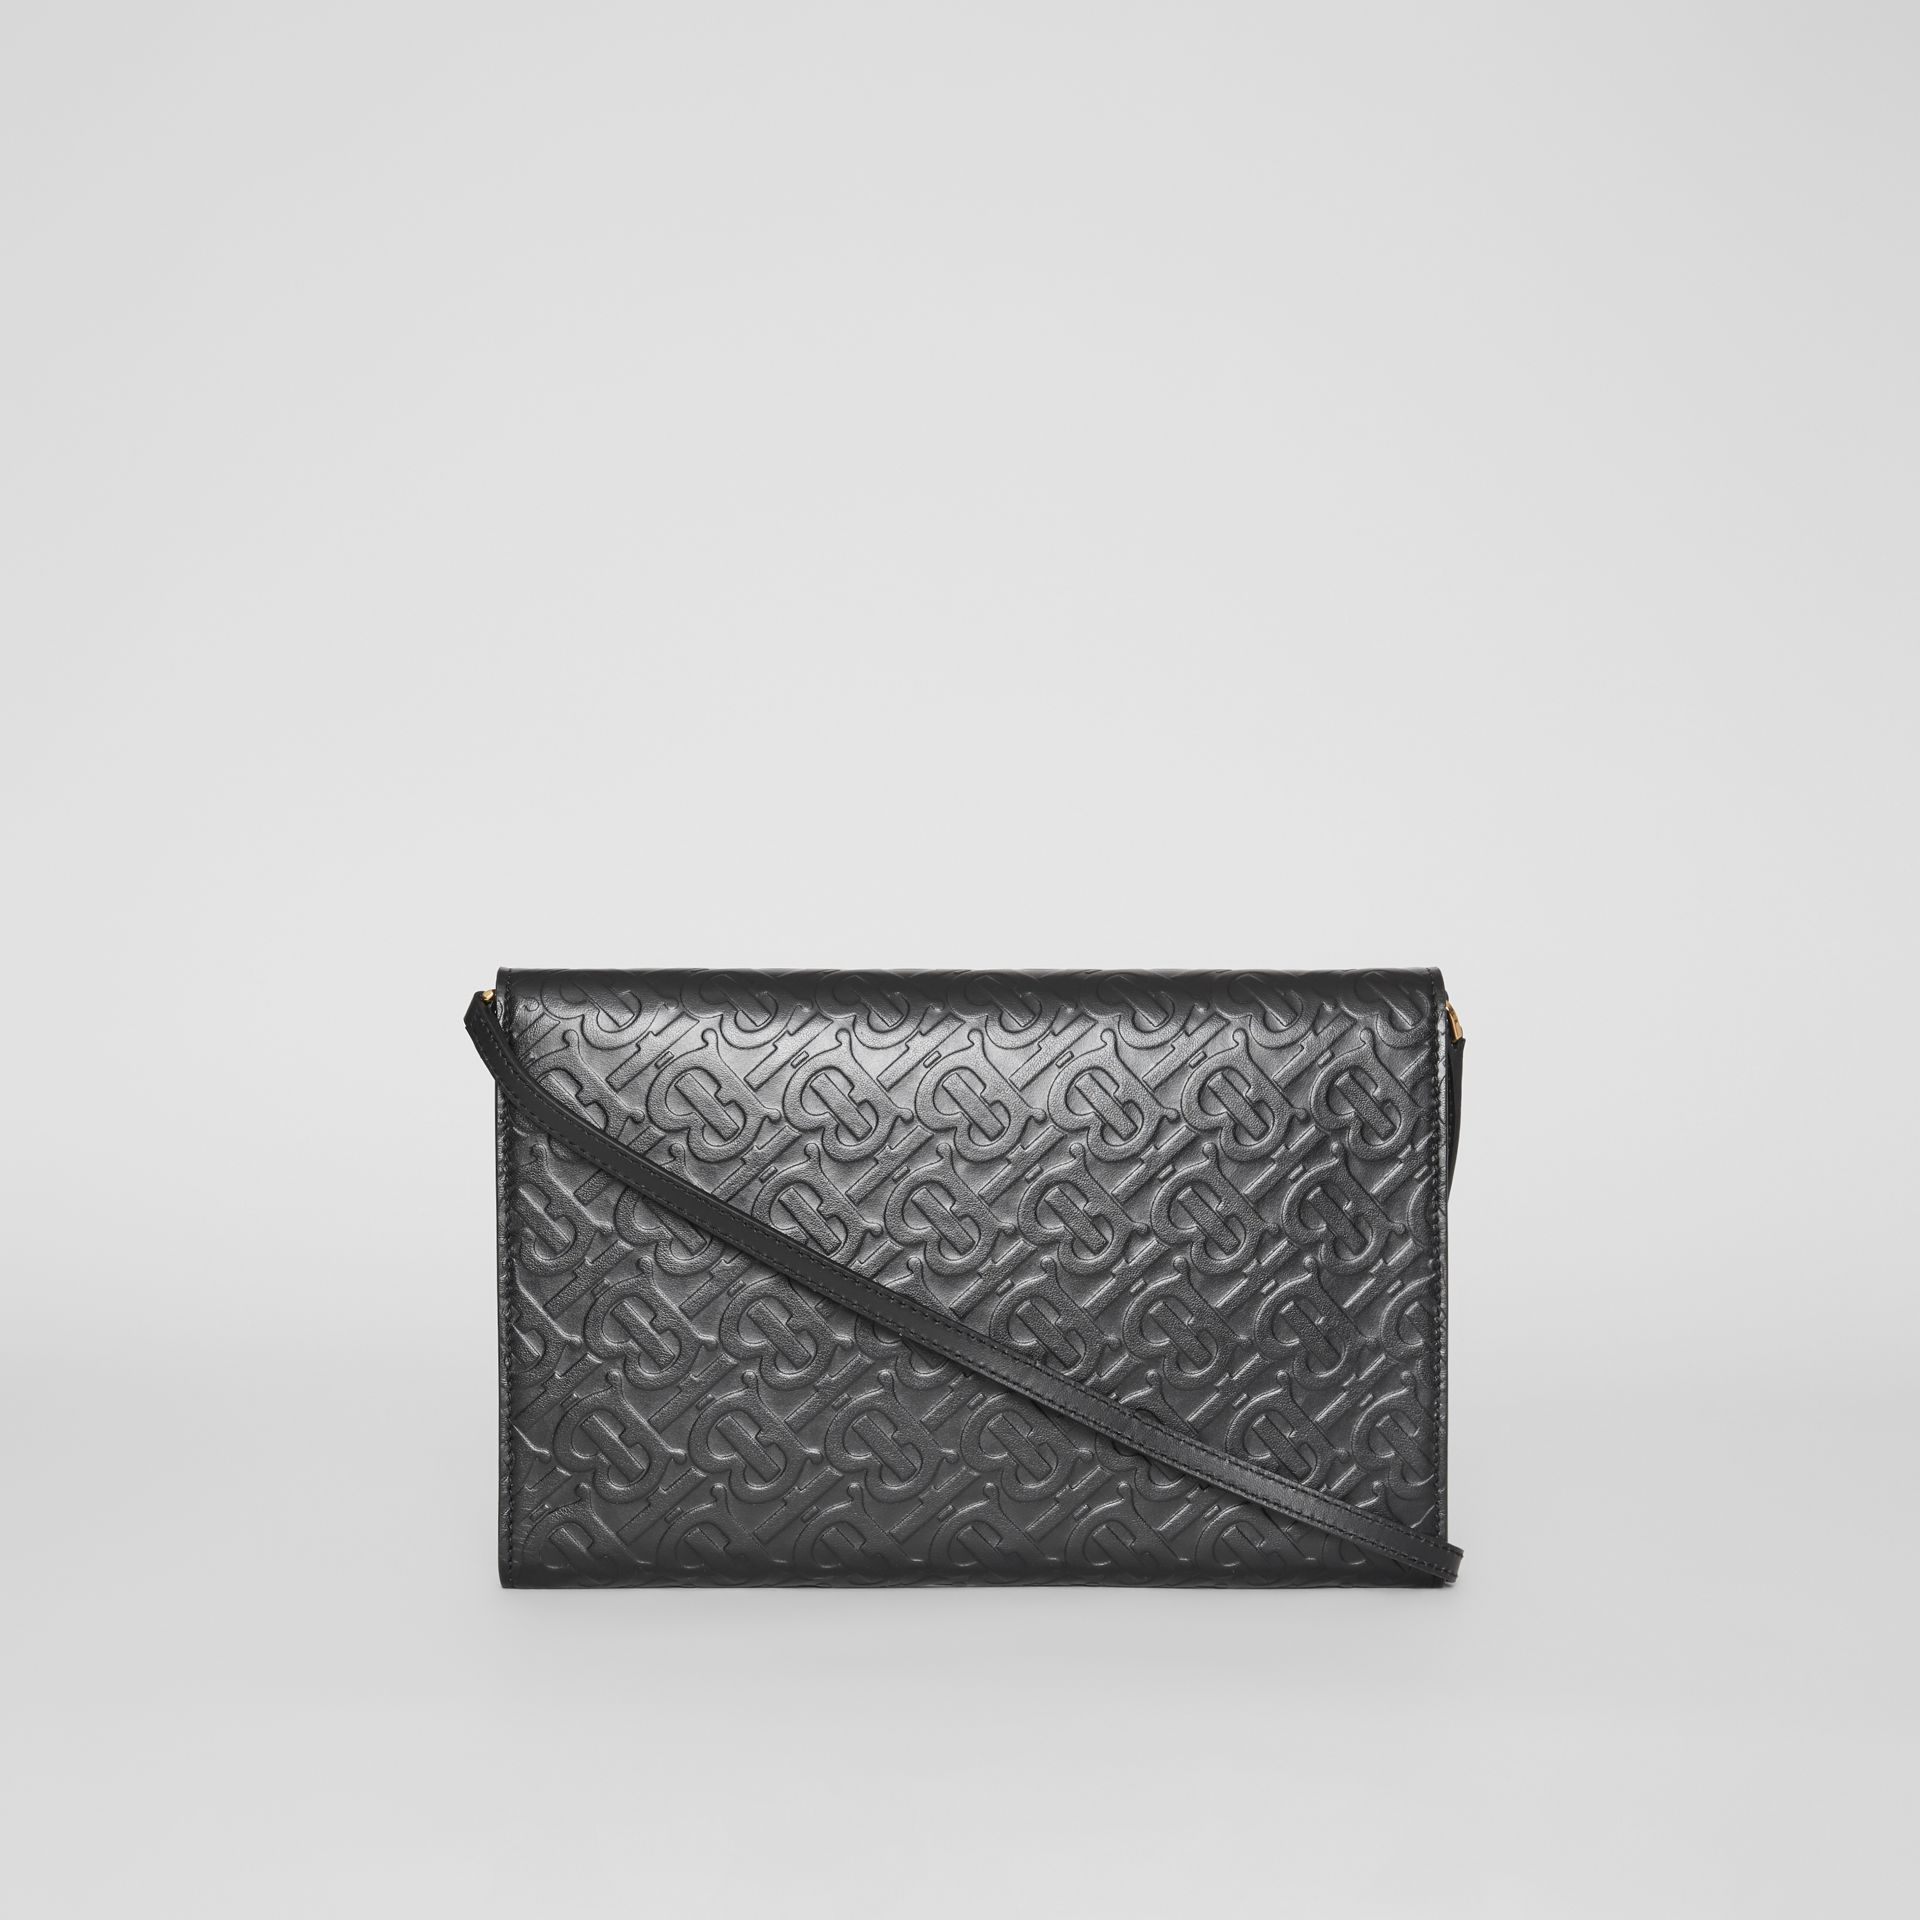 Monogram Leather Bag with Detachable Strap in Black - Women | Burberry United Kingdom - gallery image 7